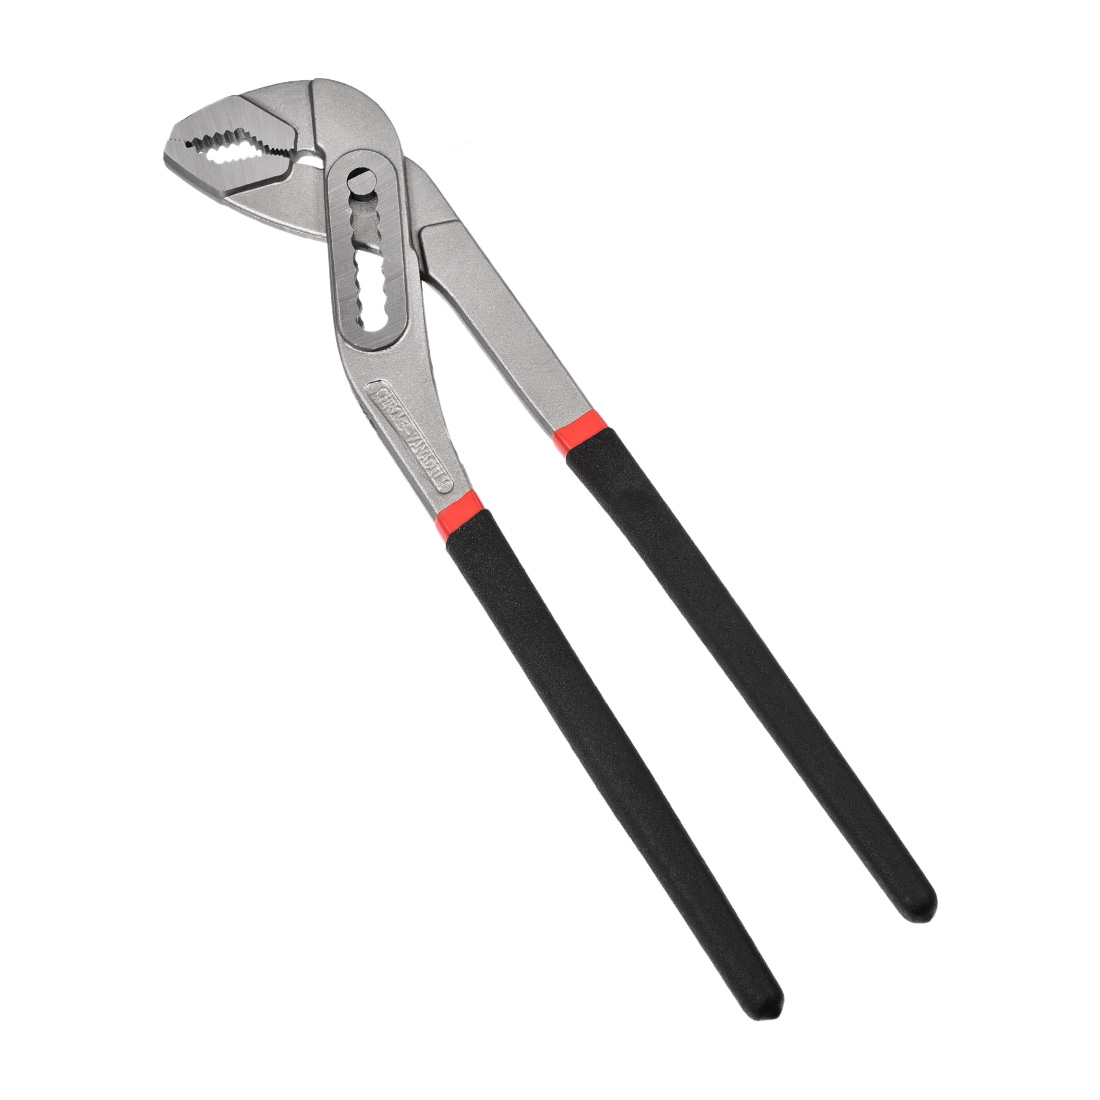 Water Pump Pliers 12-Inch Adjustable Tongue and Groove Pliers Nickel Plating